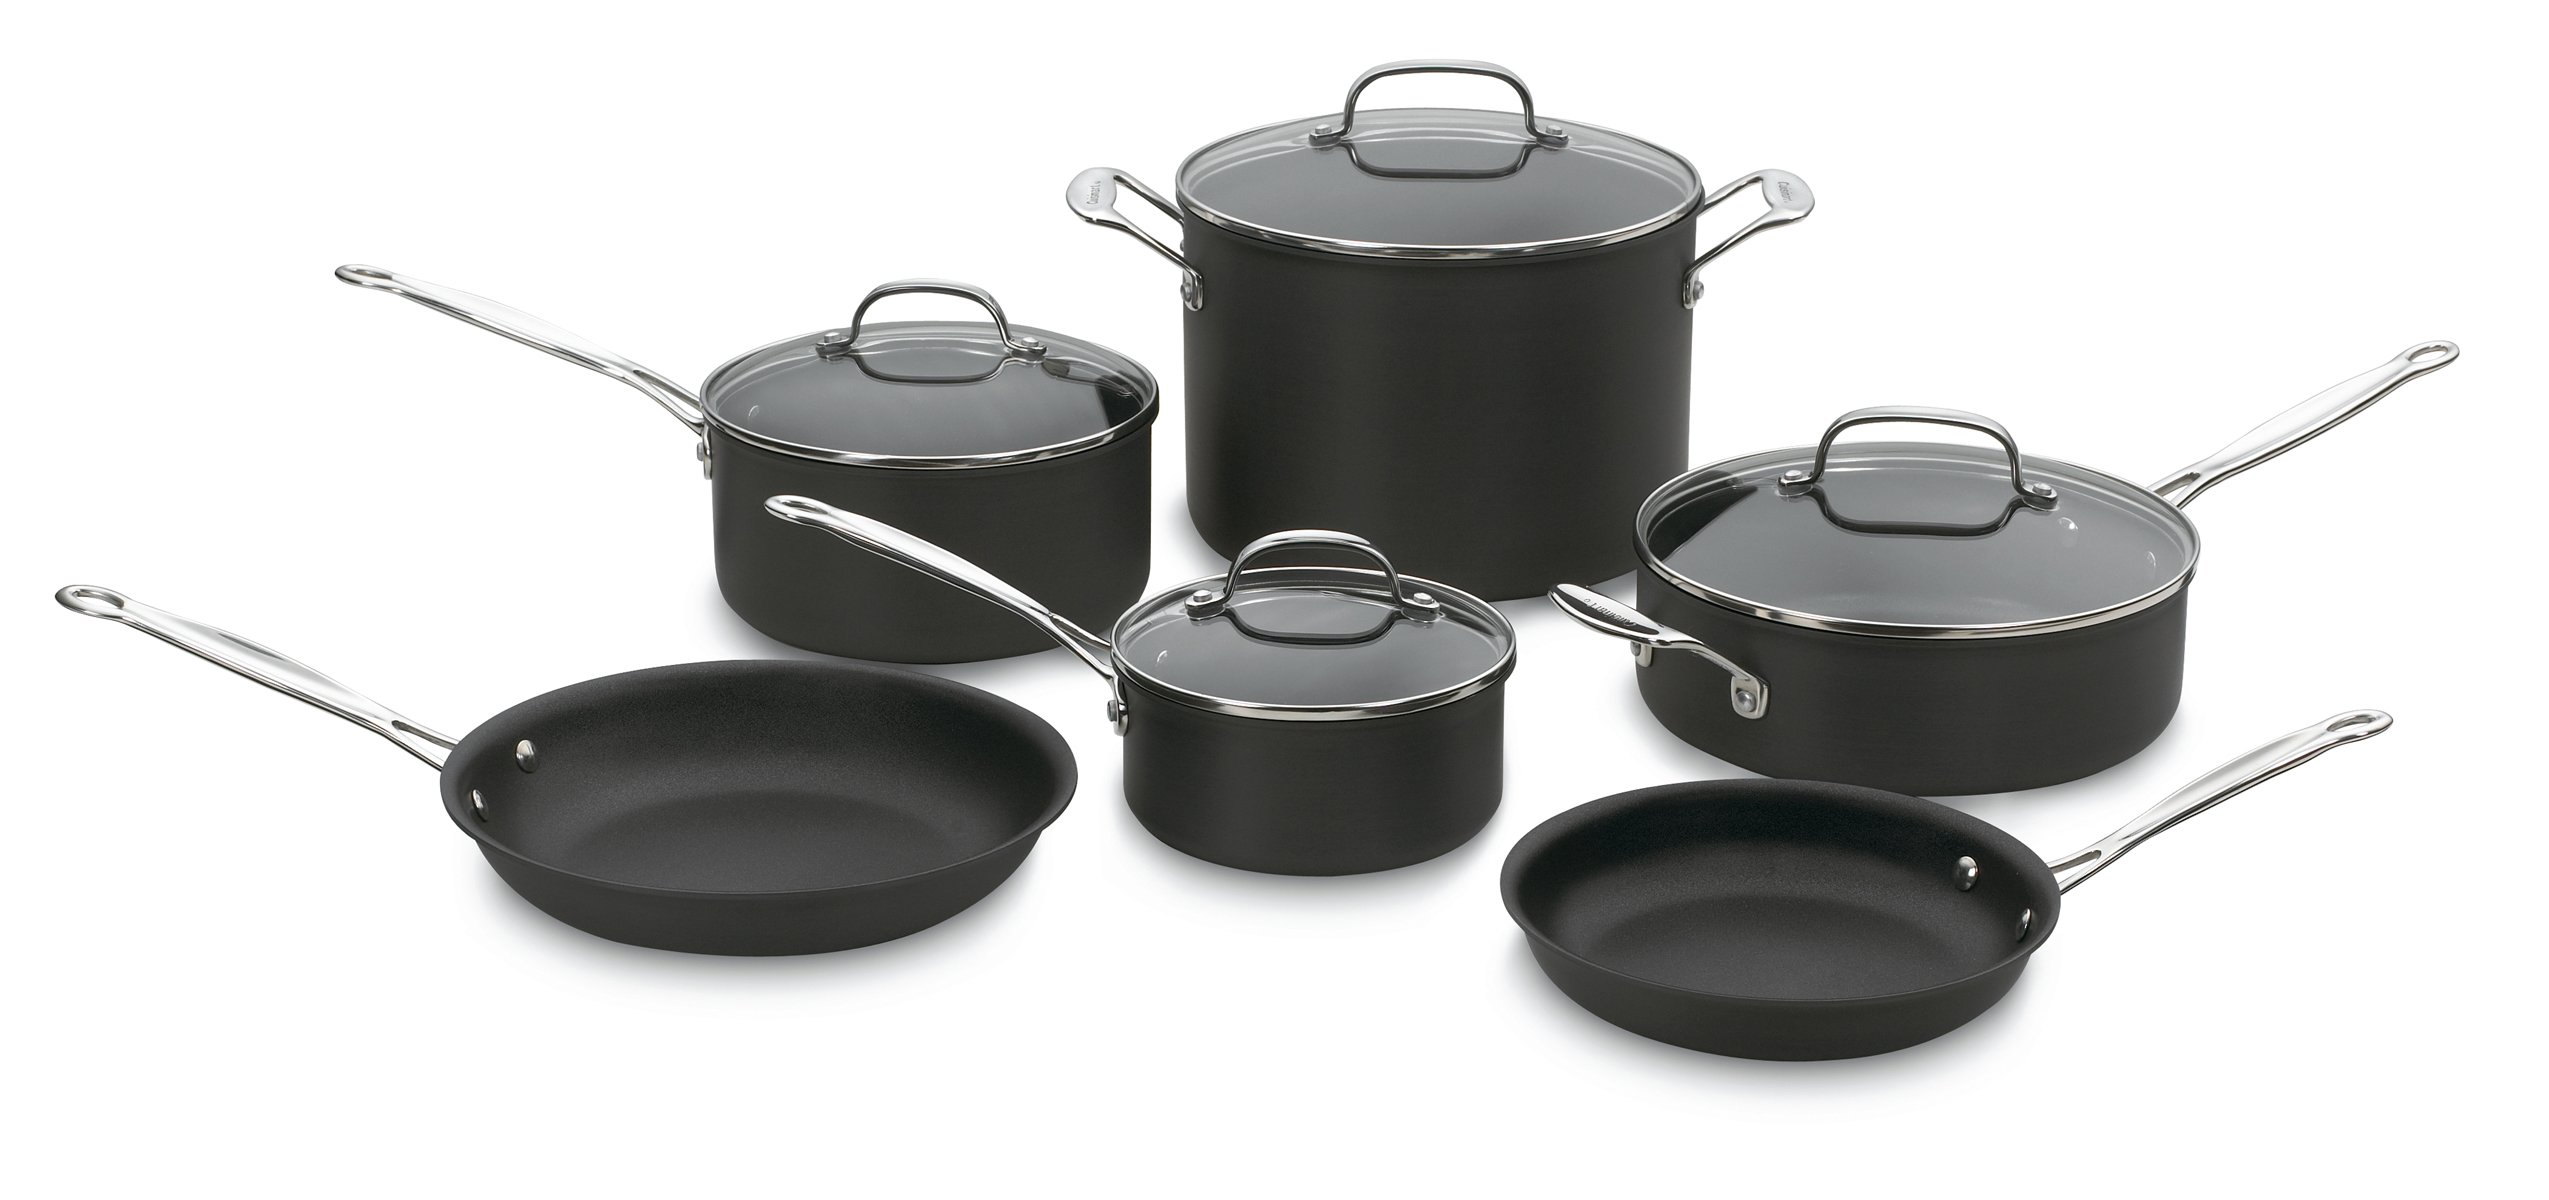 Cuisinart 66-10 Chef's Classic Nonstick Hard-Anodized 10-Piece Cookware Set by Cuisinart